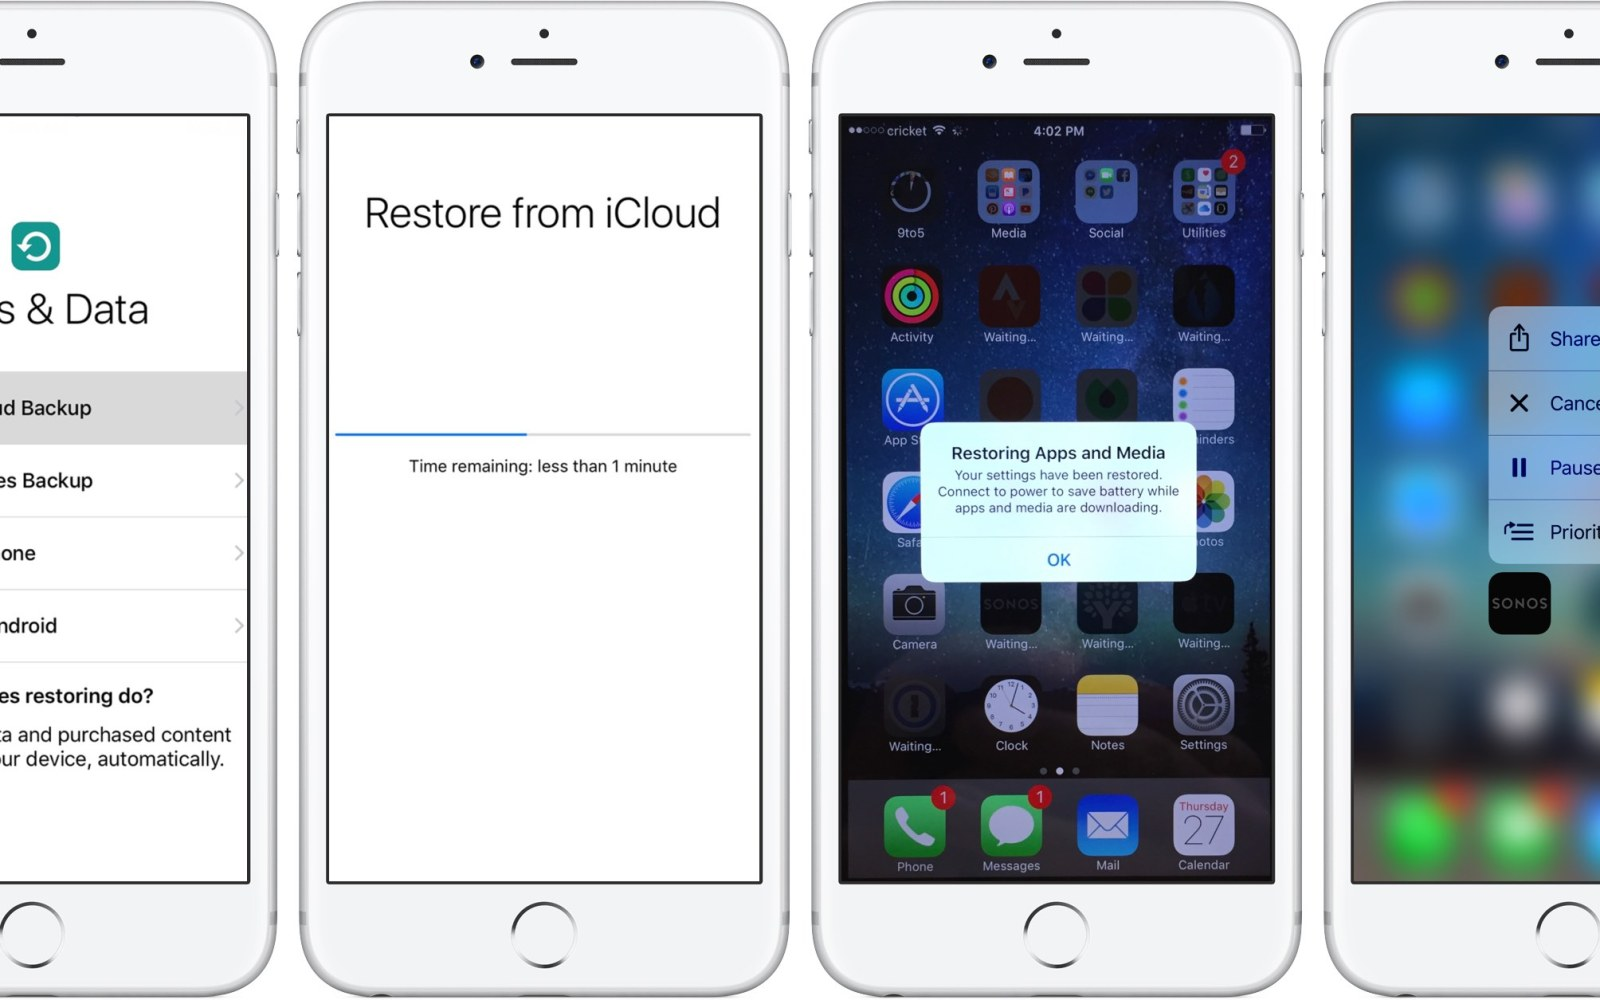 how can i reset my iphone how to restore iphone from icloud backup 9to5mac 18436